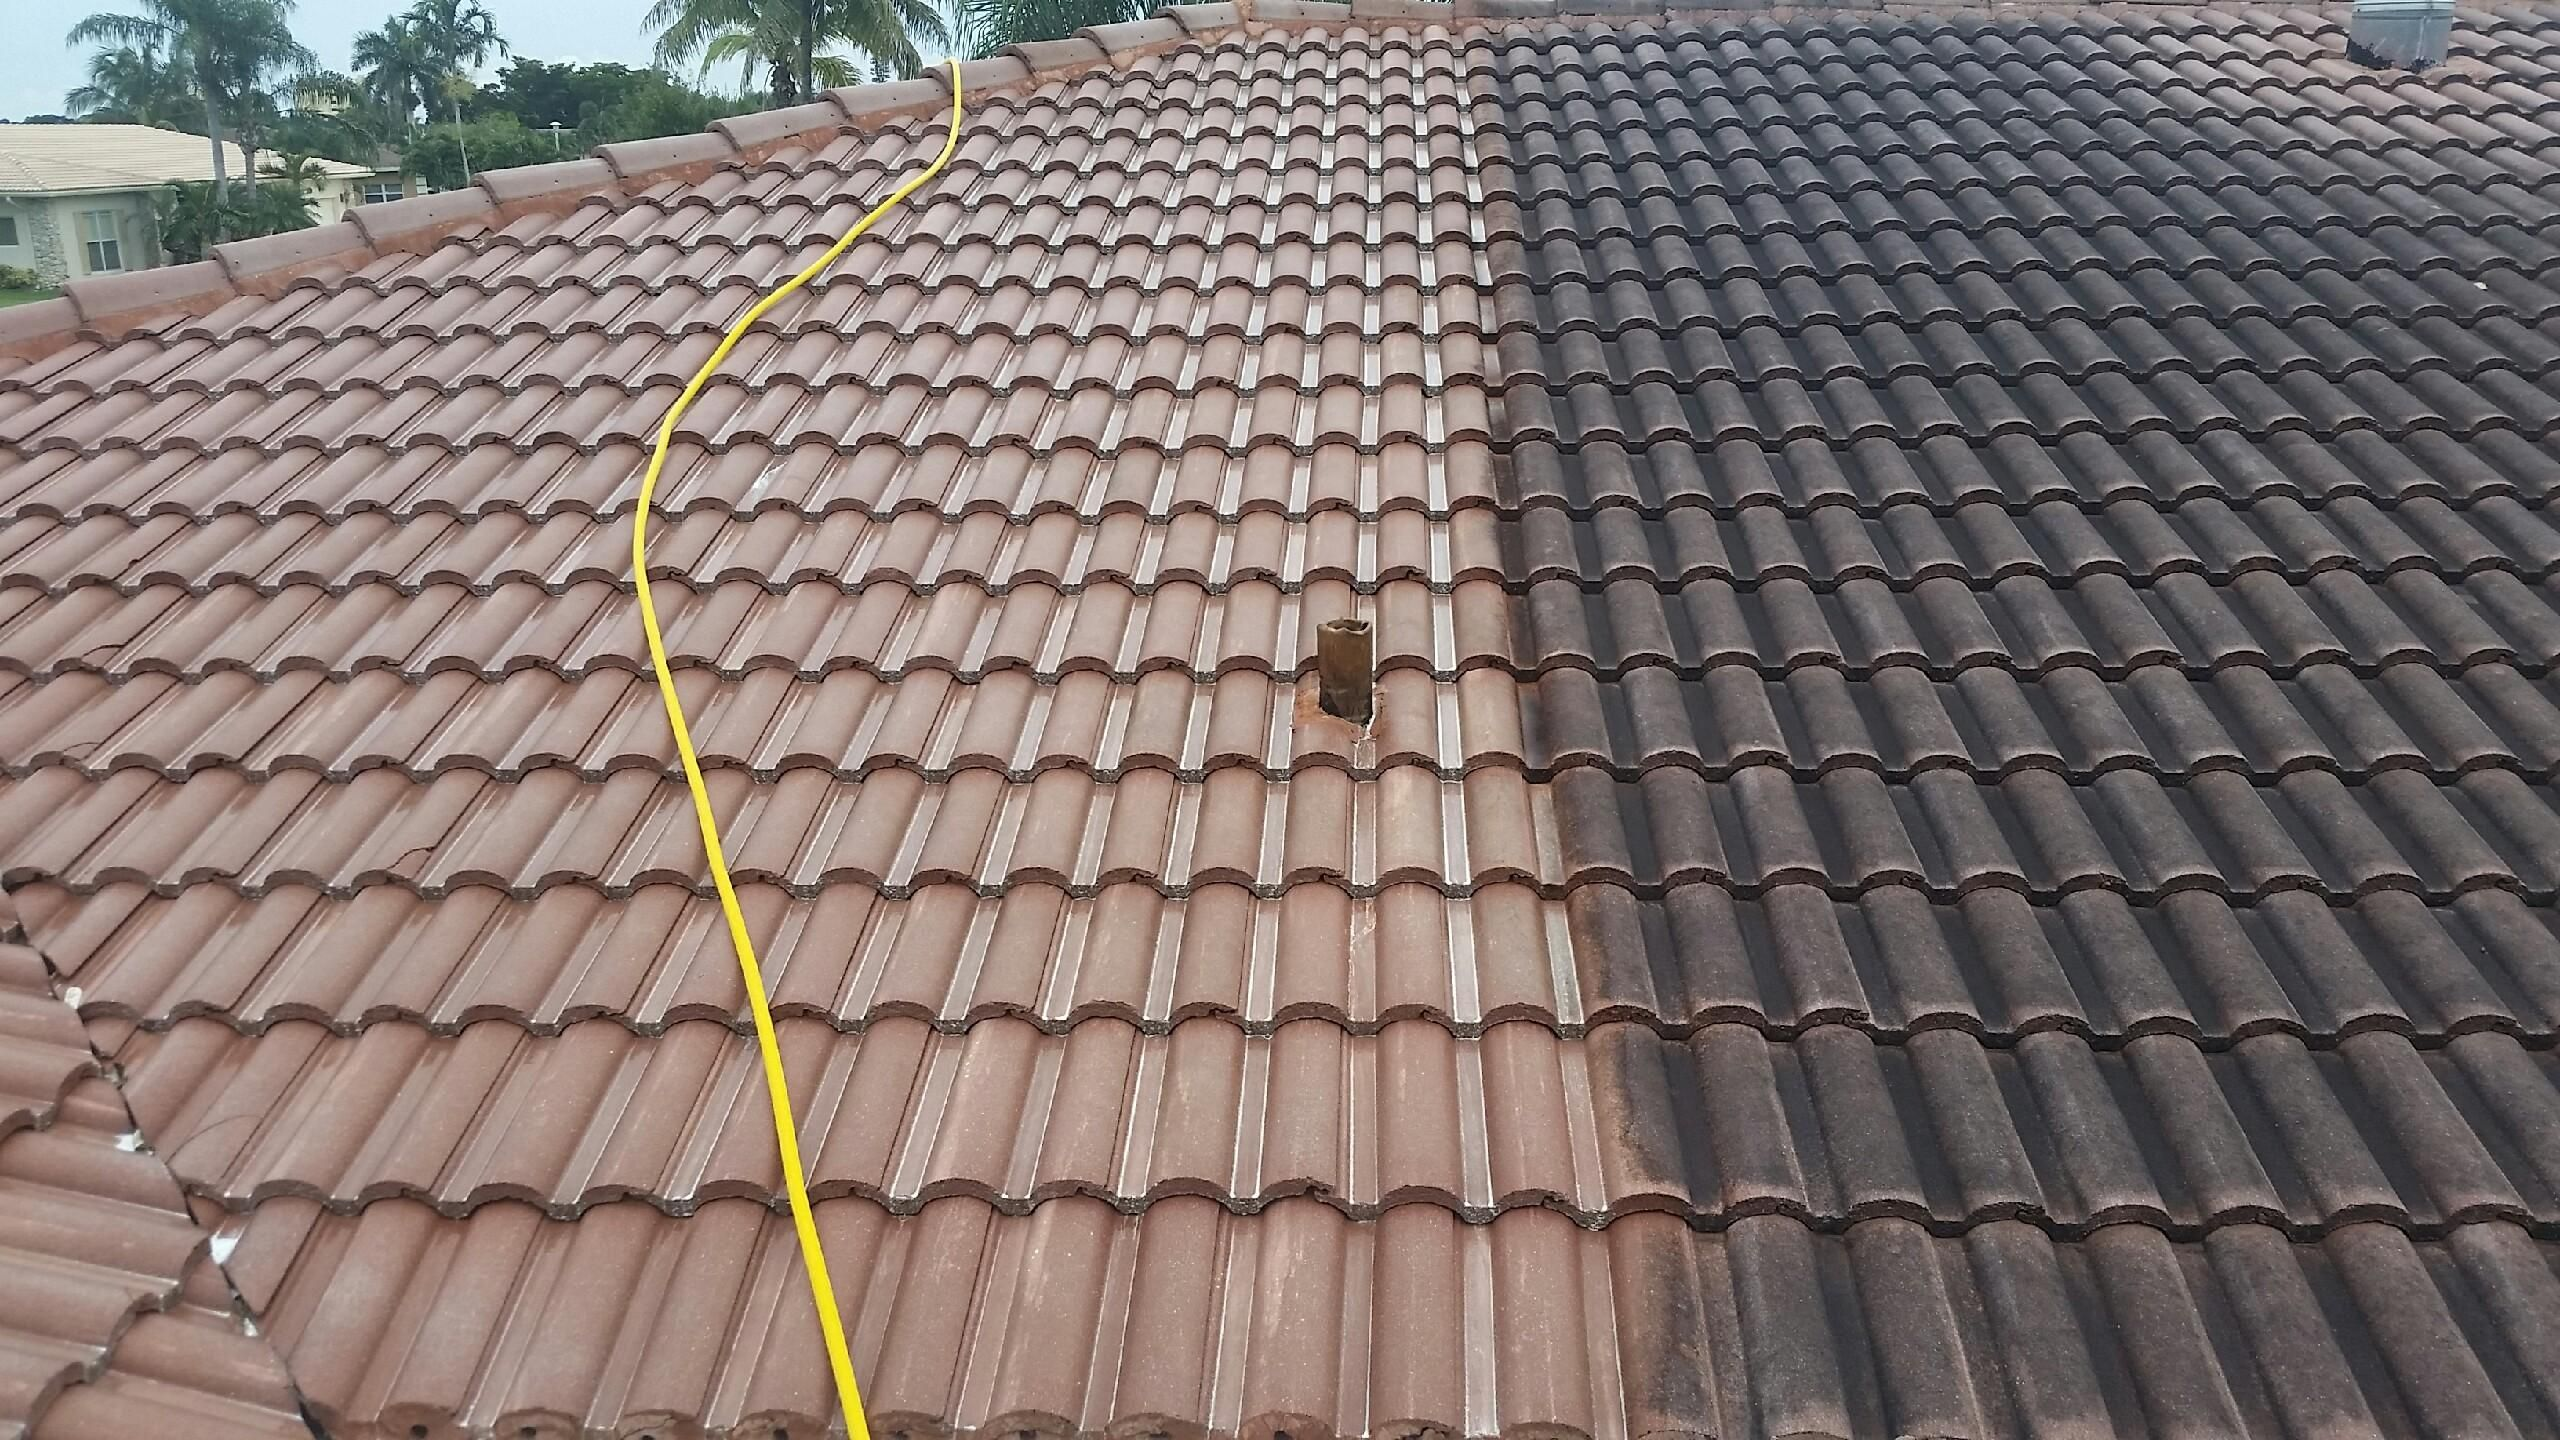 Can You Pressure Wash Clay Tile Roof In 2020 Roof Cleaning Roof Repair Clean Concrete